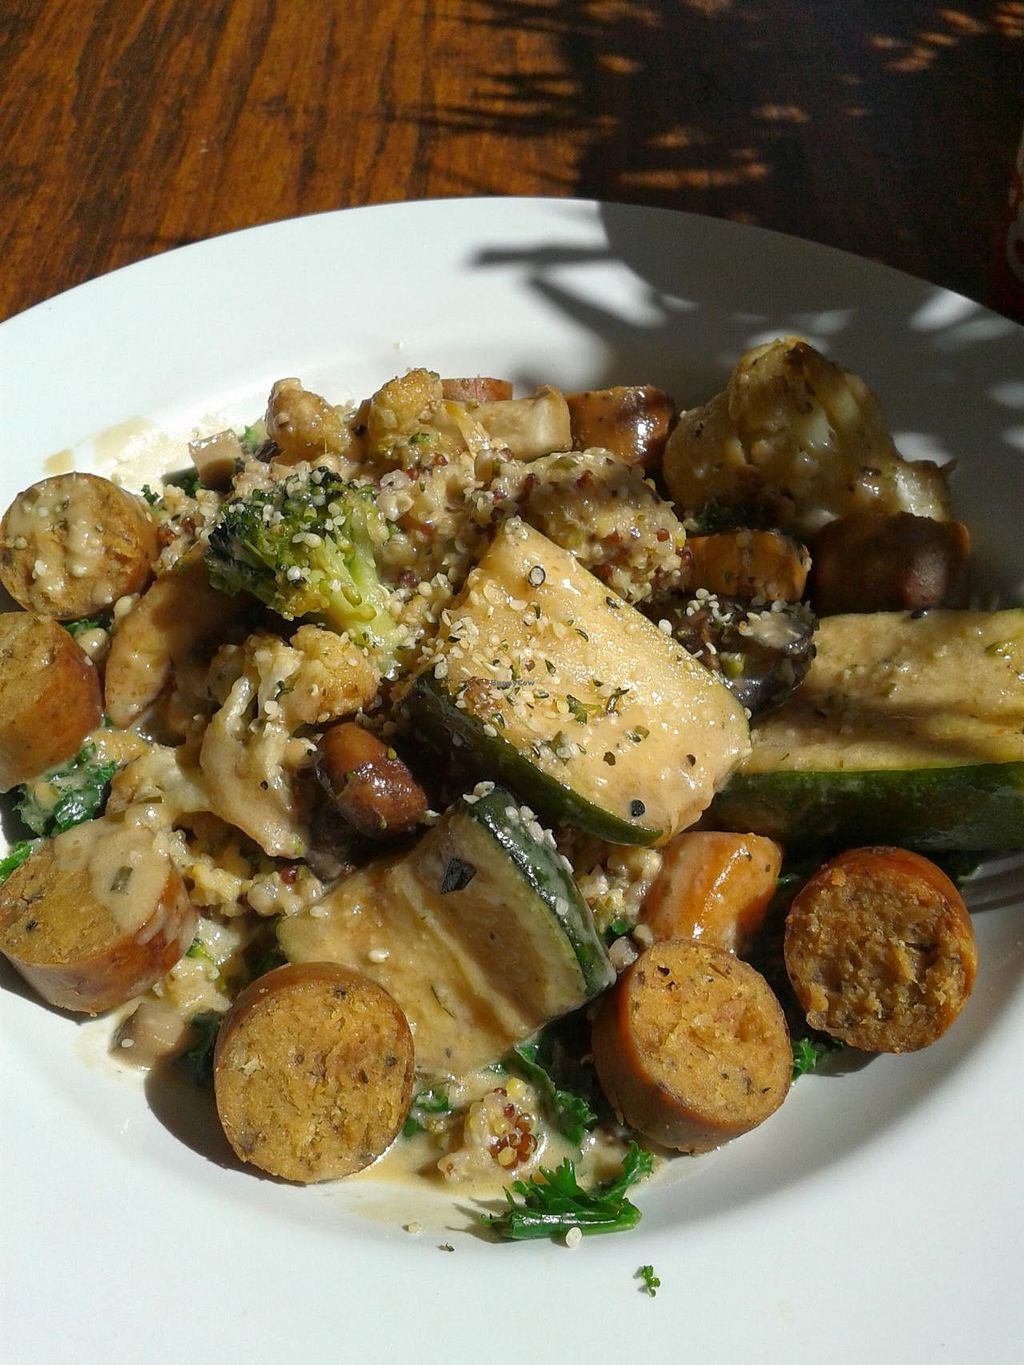 """Photo of Veggie Grill  by <a href=""""/members/profile/chobesoy"""">chobesoy</a> <br/>New grilled veggie curry with Field Roast sausage <br/> April 11, 2014  - <a href='/contact/abuse/image/33046/67414'>Report</a>"""